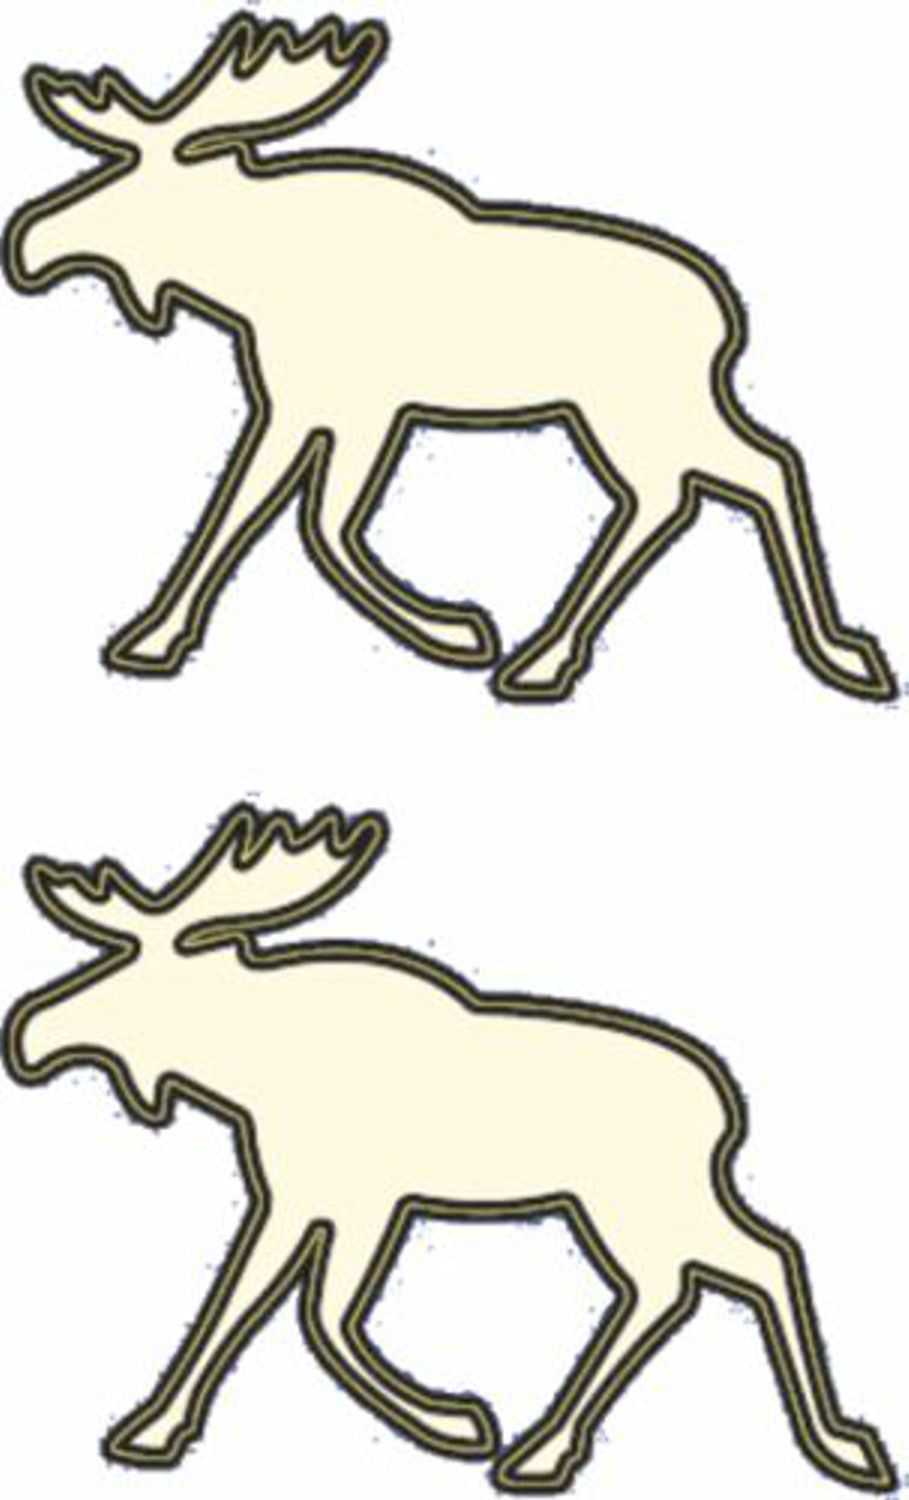 Afterglow sticker moose set of 2 – Bild 1